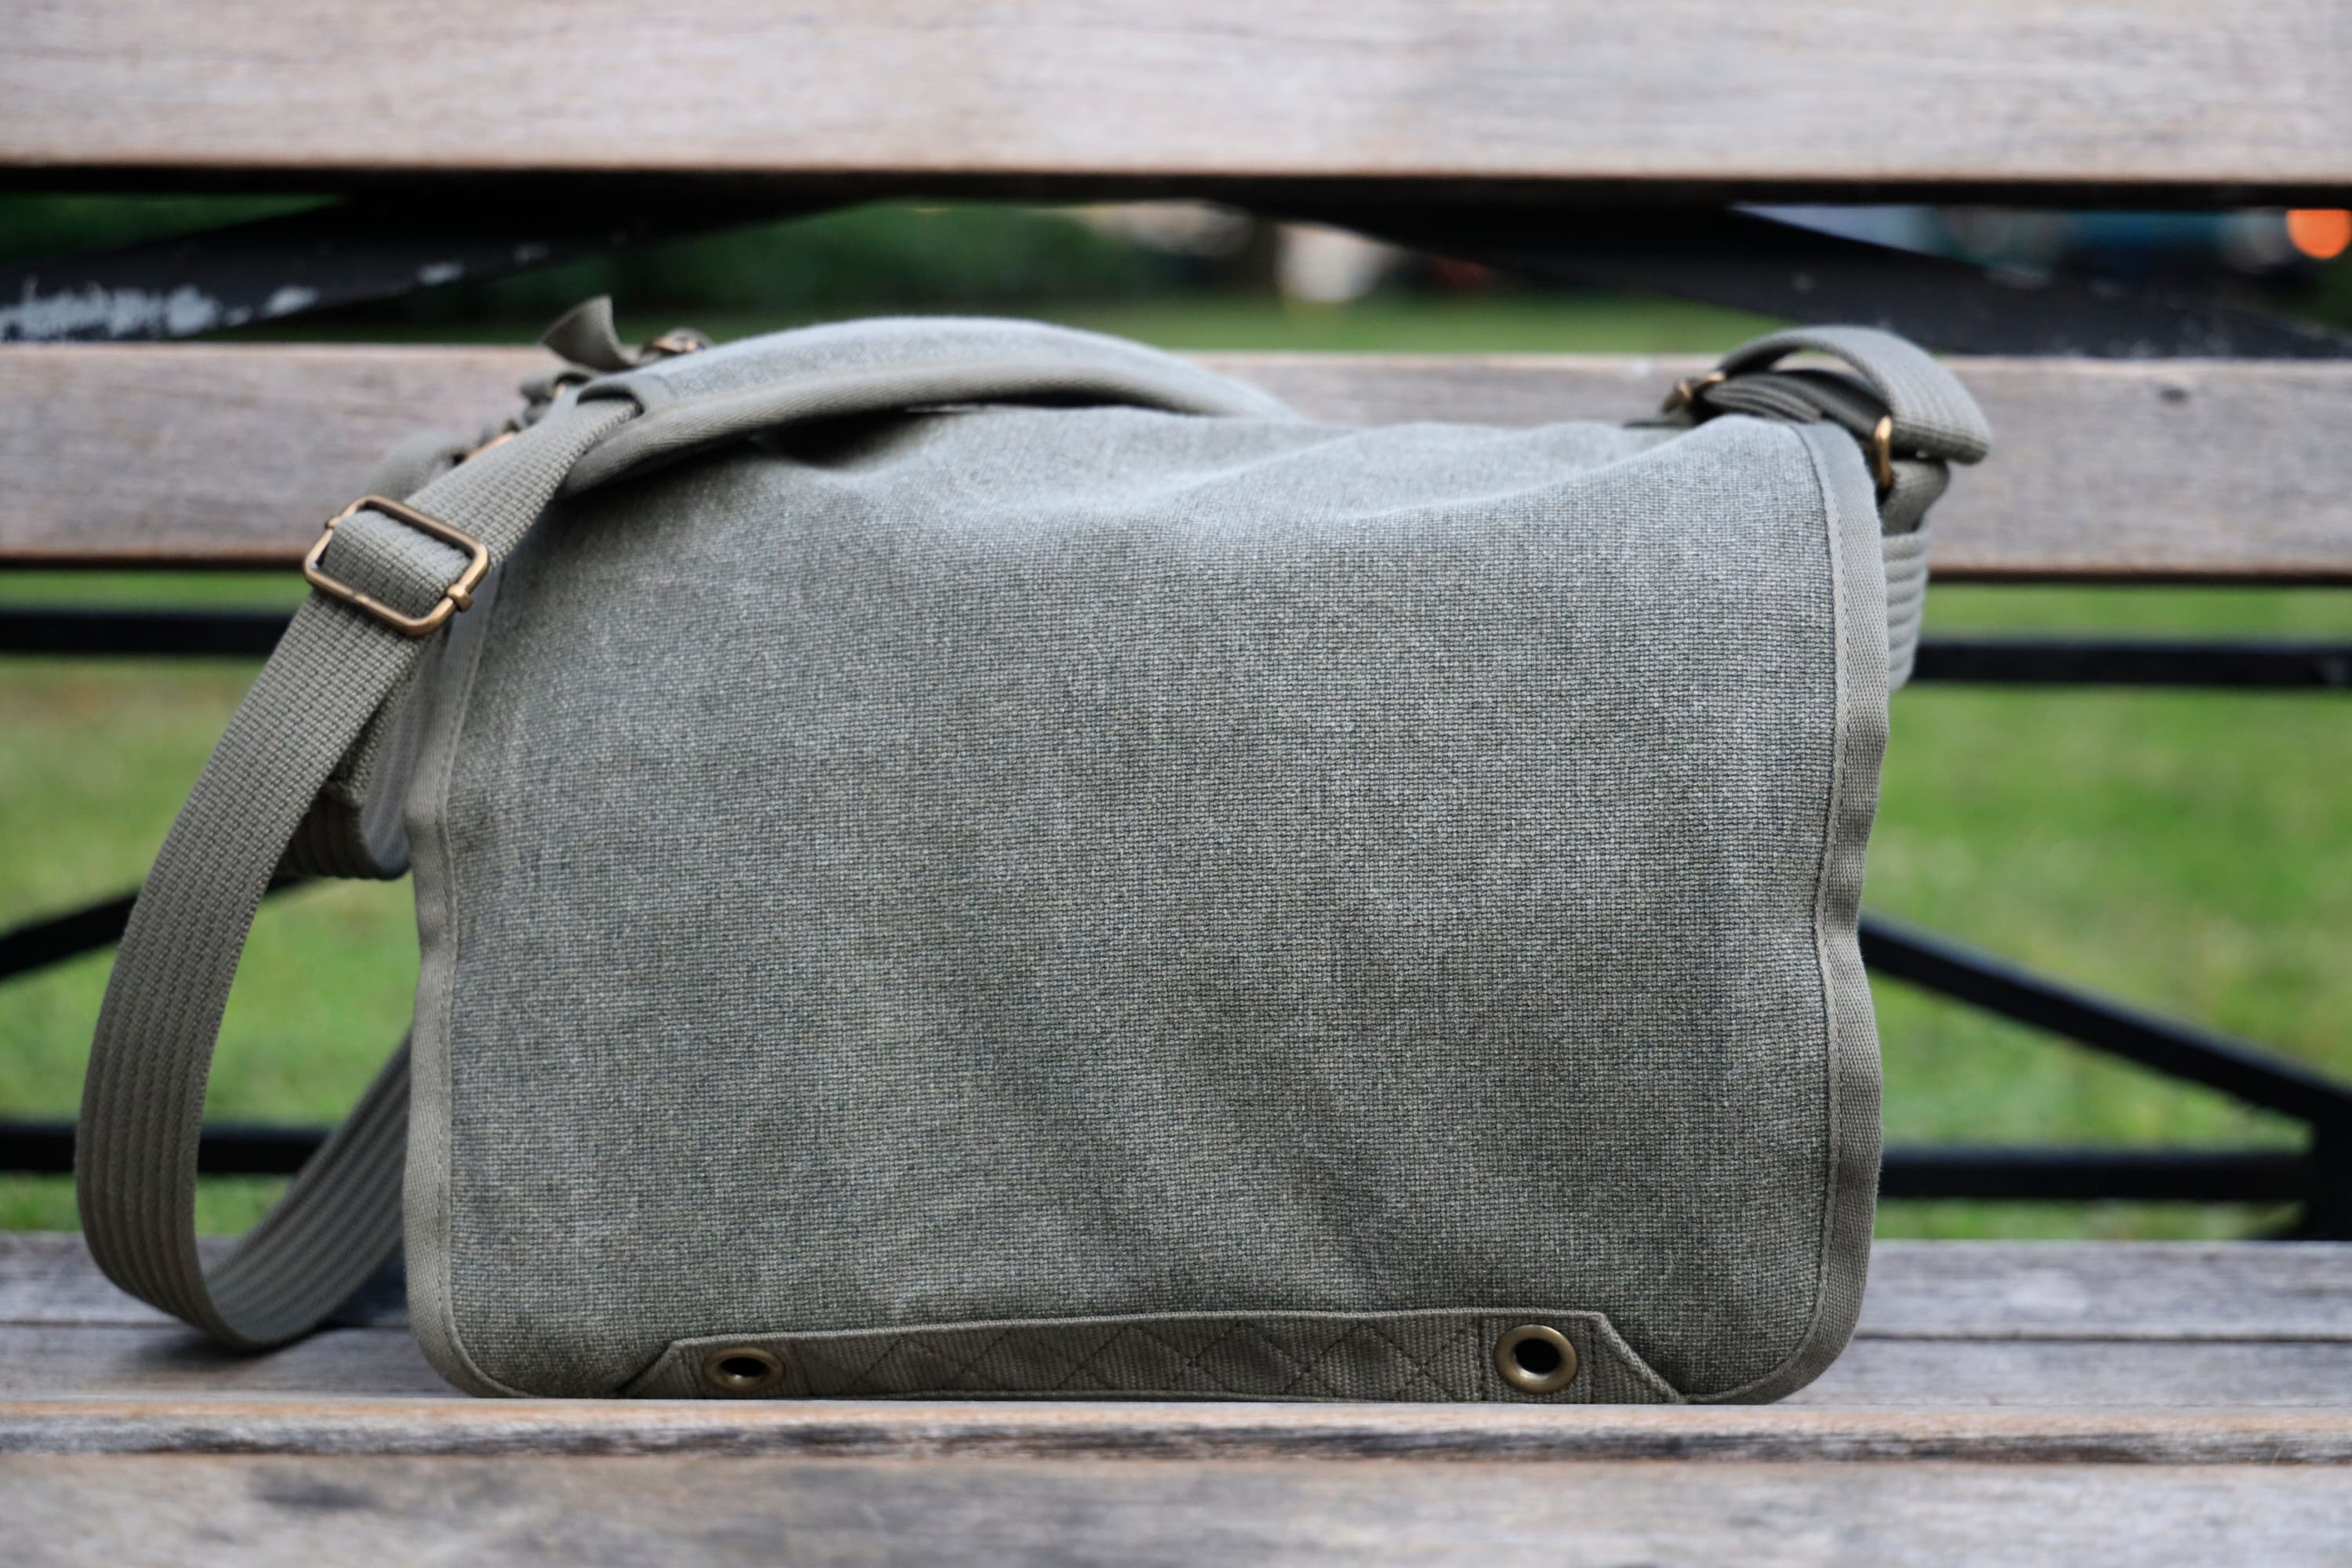 Camera Bag Review: Think Tank Retrospective 7 V2 (Just as Vanilla as the First)